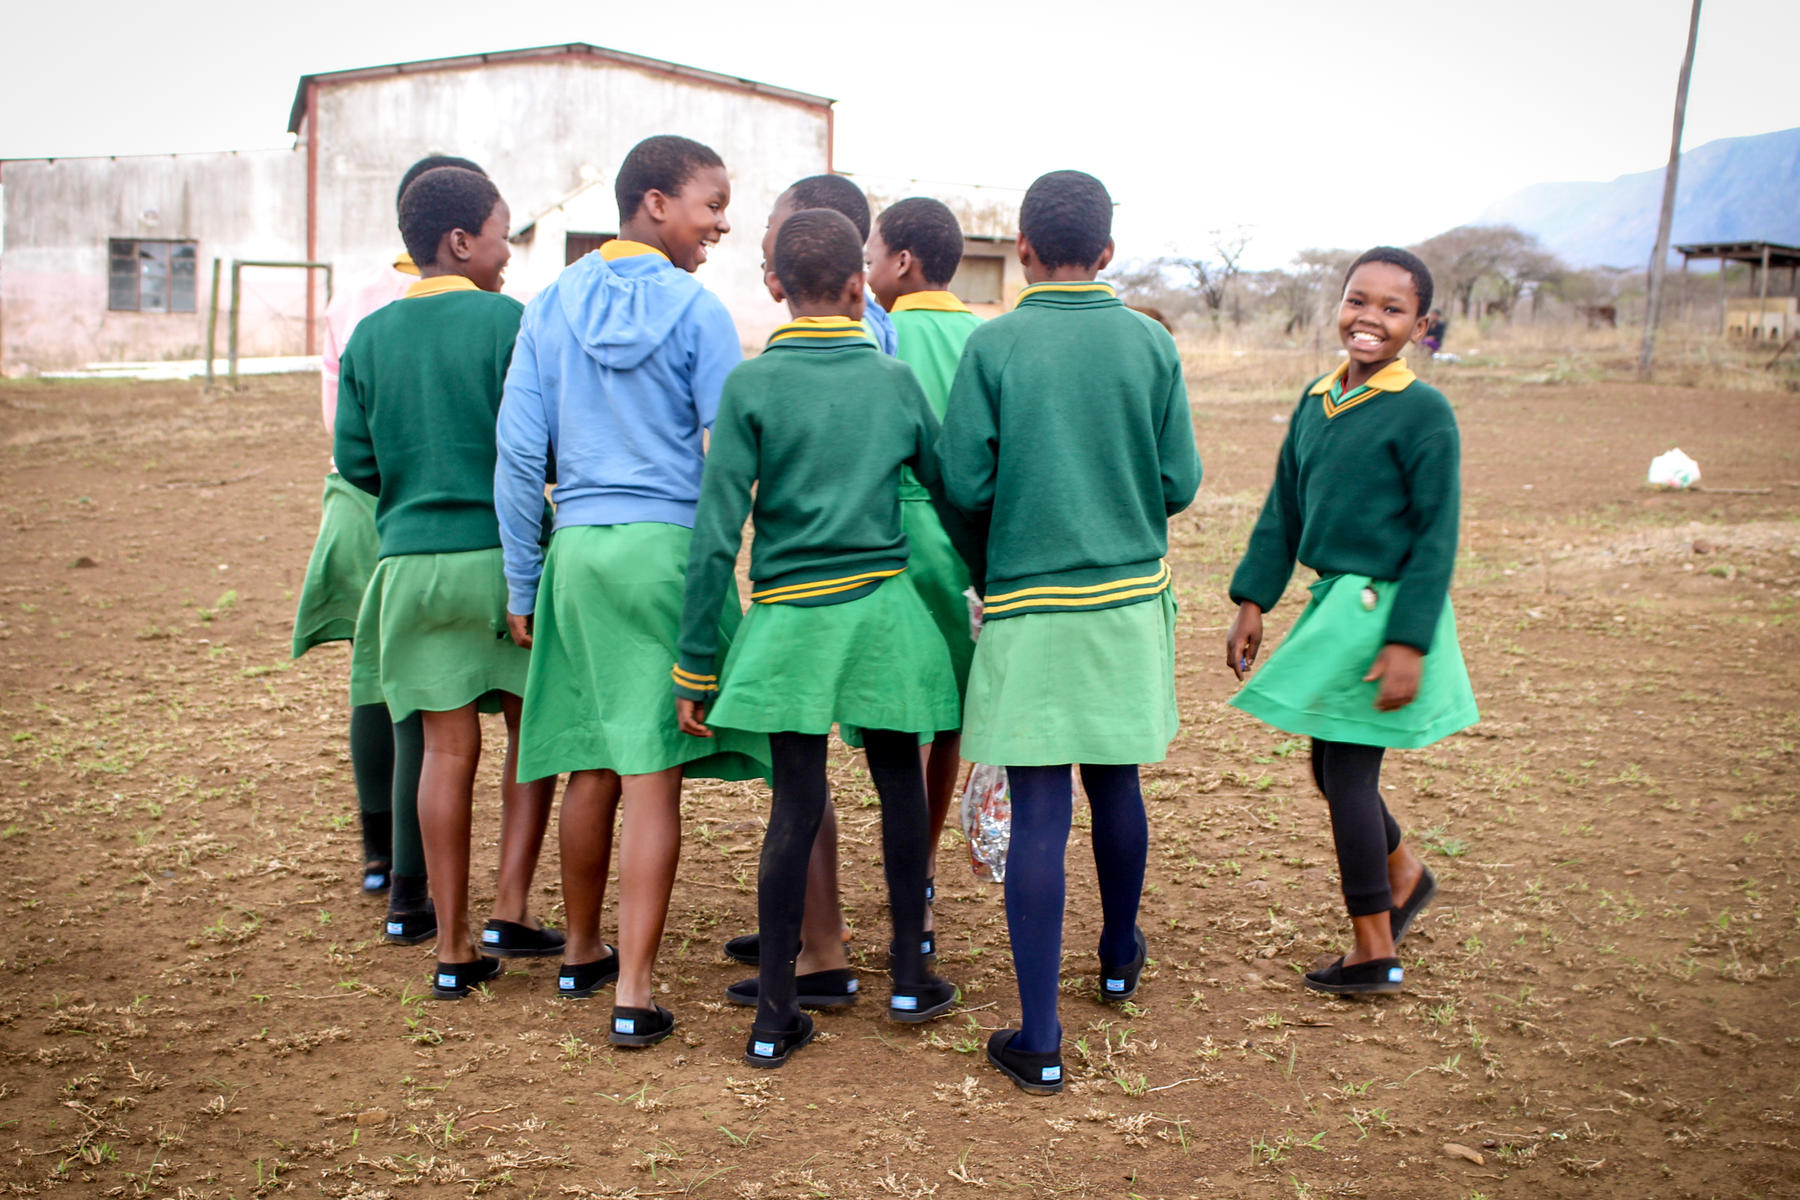 A group of school children in Eswatini